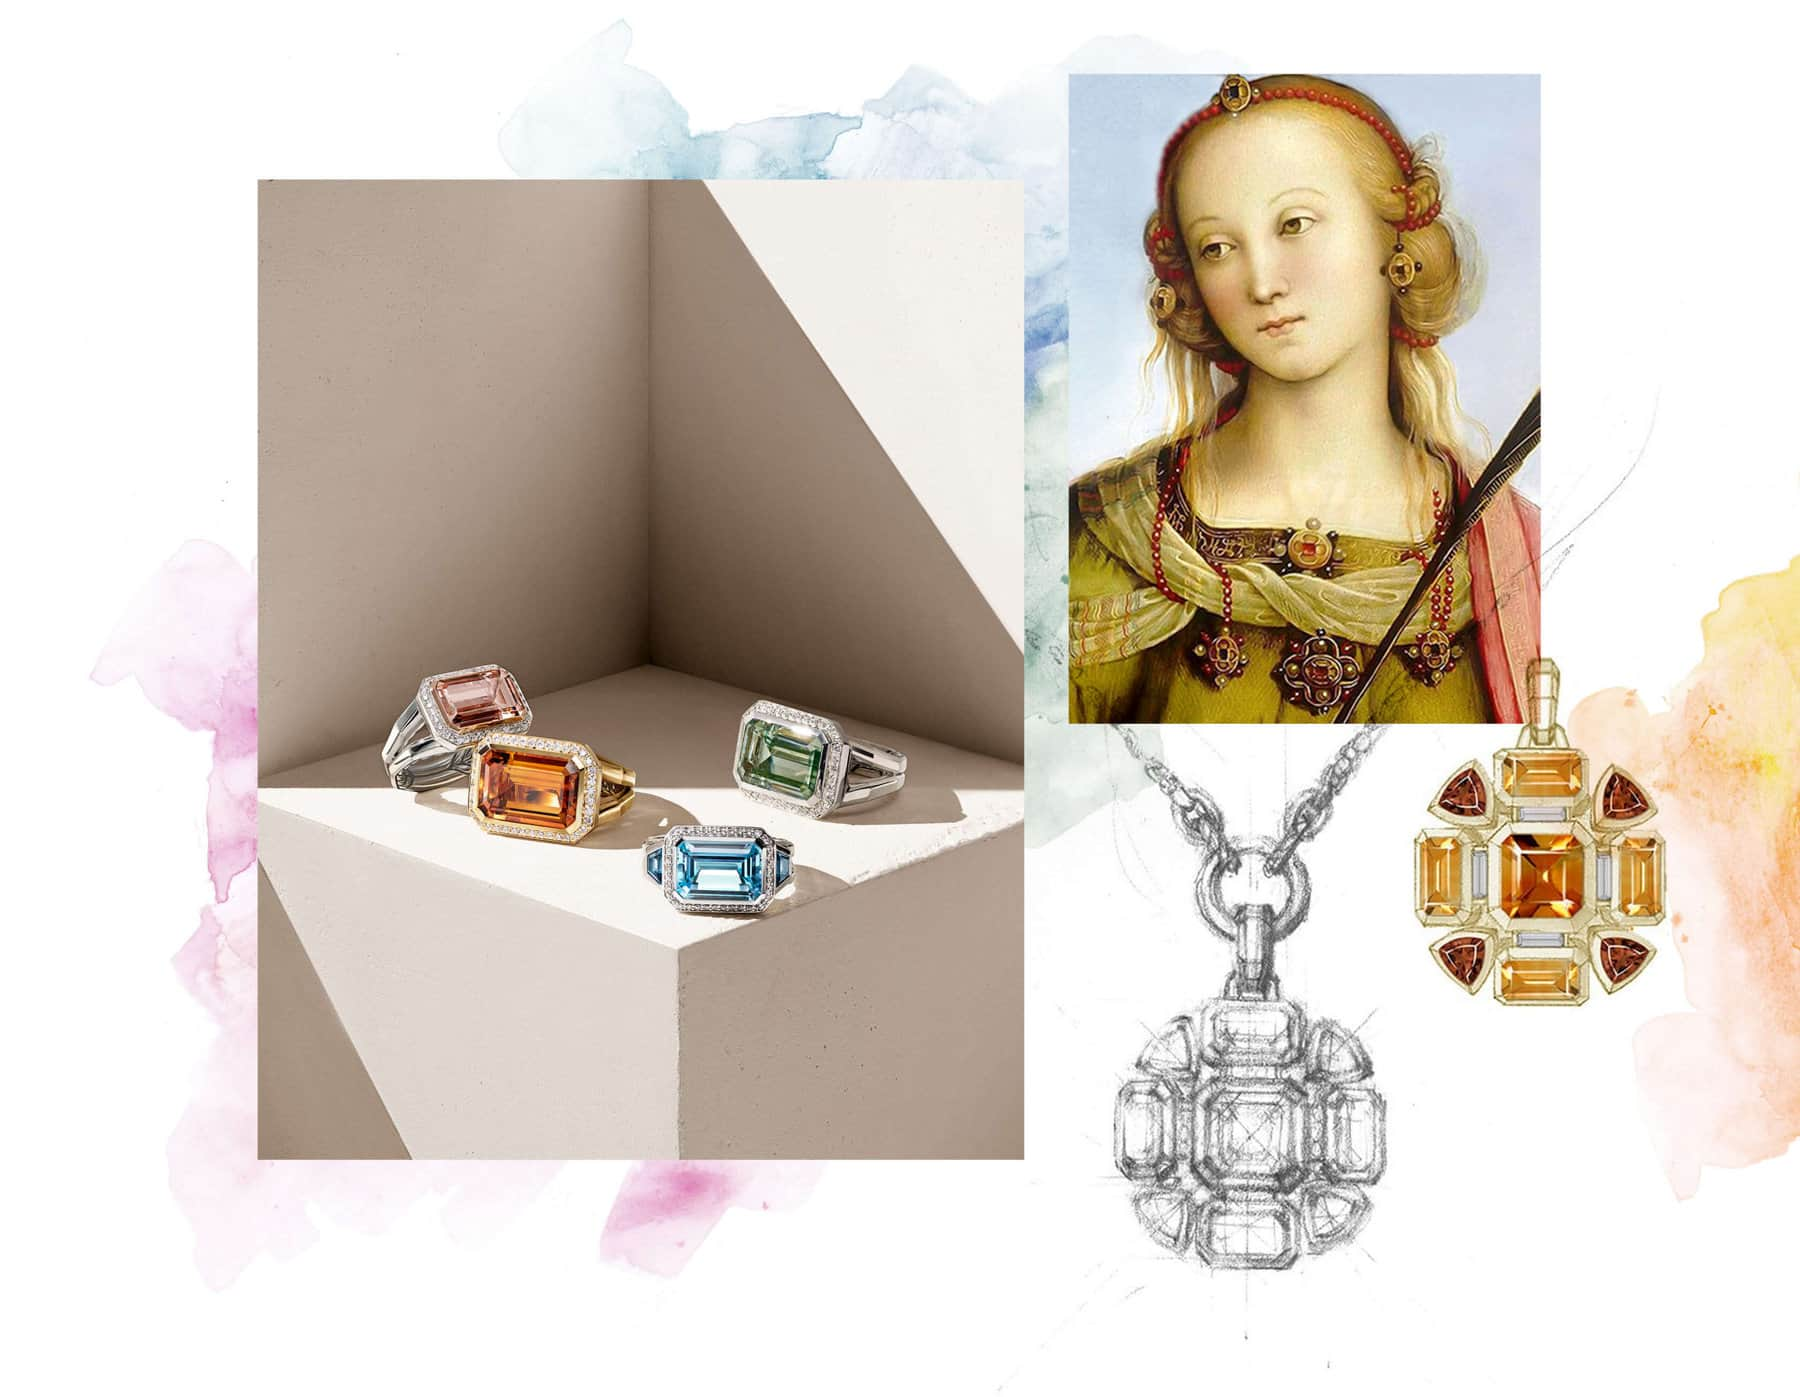 A photo collage juxtaposes a color photo of David Yurman Novella rings with a painting of a woman and a black-and-white sketch of a Novella mosaic pendant with splotches of color in the background. The rings are crafted from sterling silver with or without 18K rose gold, or 18K yellow gold, all with colored gemstones and pavé diamonds.